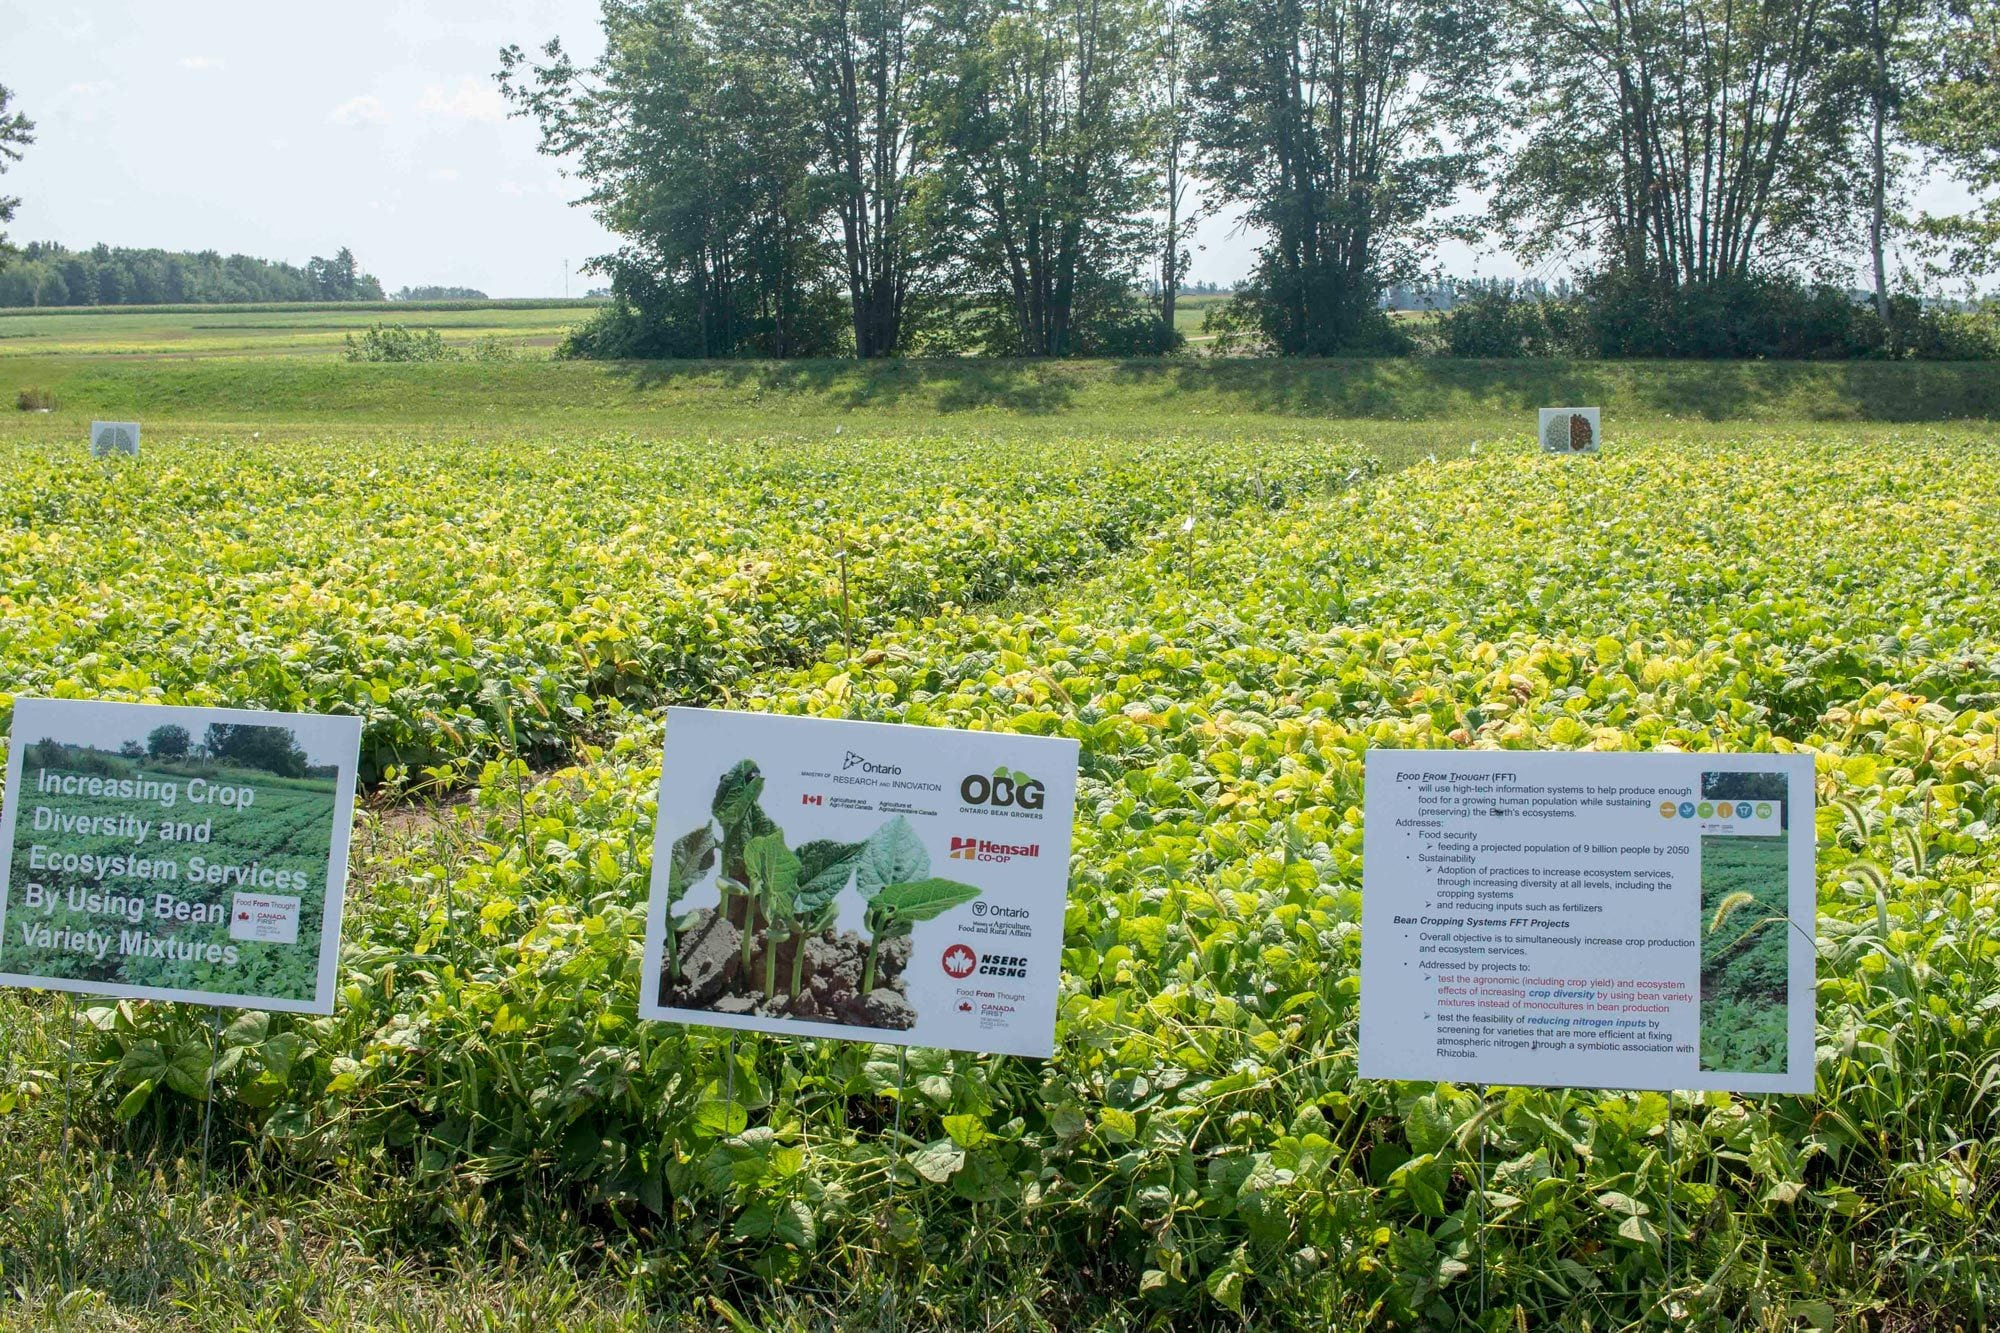 Bean variety mixture trial at Elora Research Station